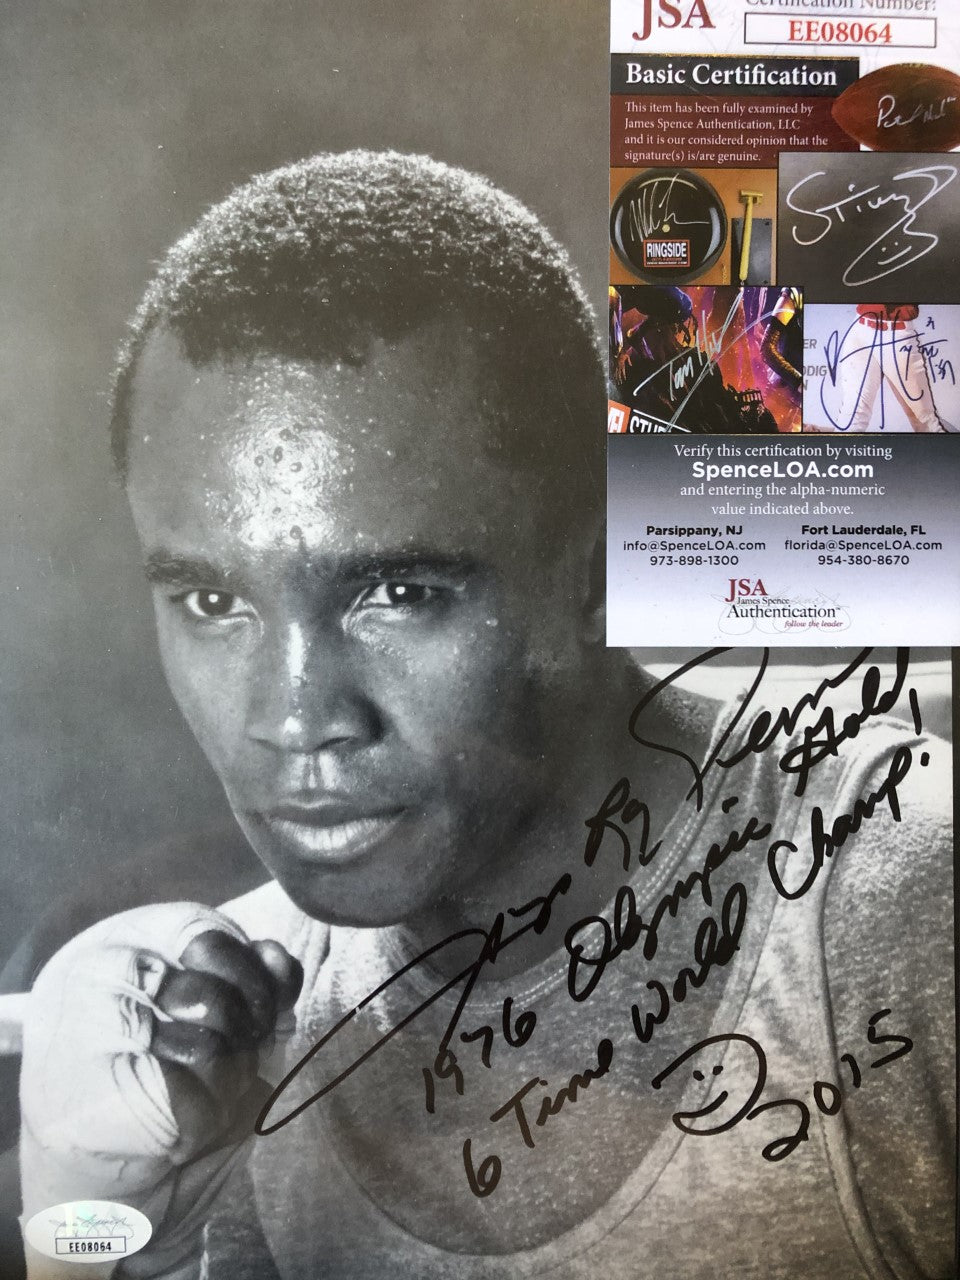 Four Kings Autographed Boxing Photo memorabilia Signed with Cert